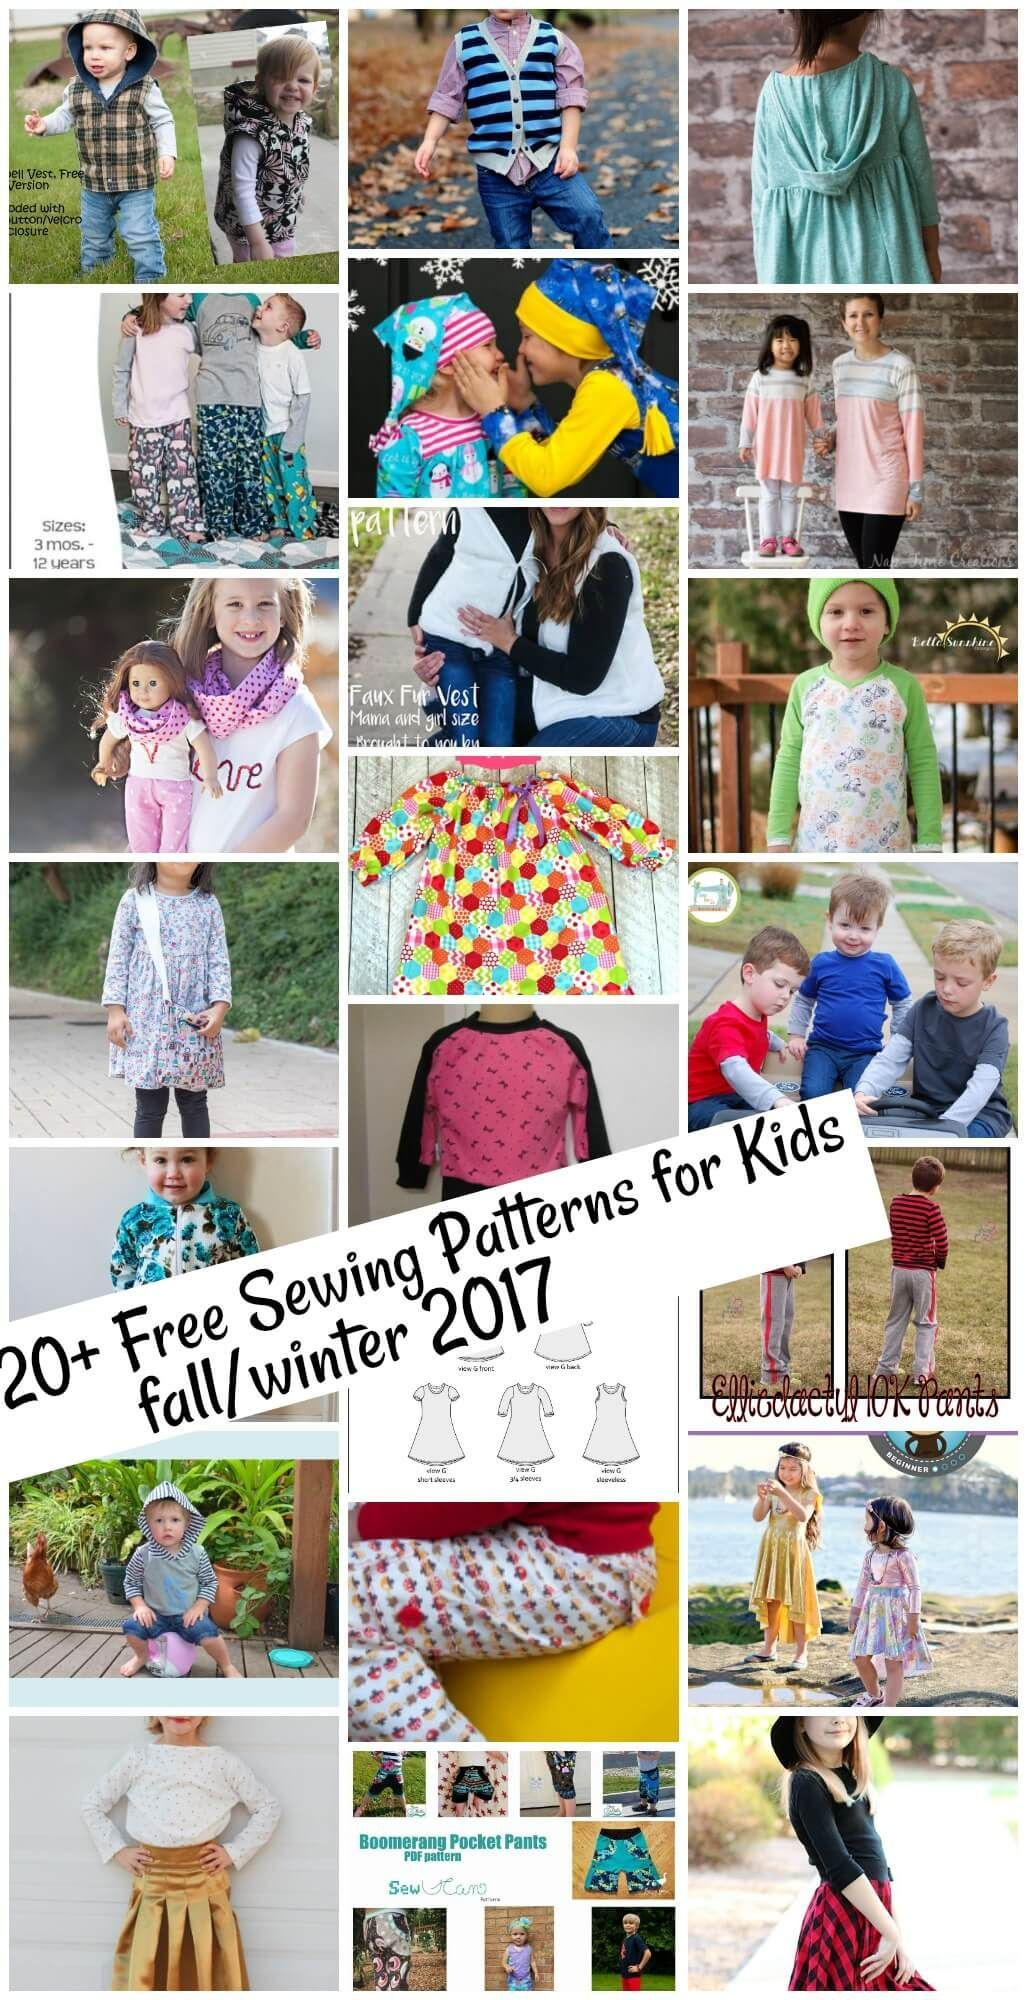 Free sewing patterns for kids fallwinter 2017 children sewing free sewing patterns for kids fallwinter 2017 jeuxipadfo Images